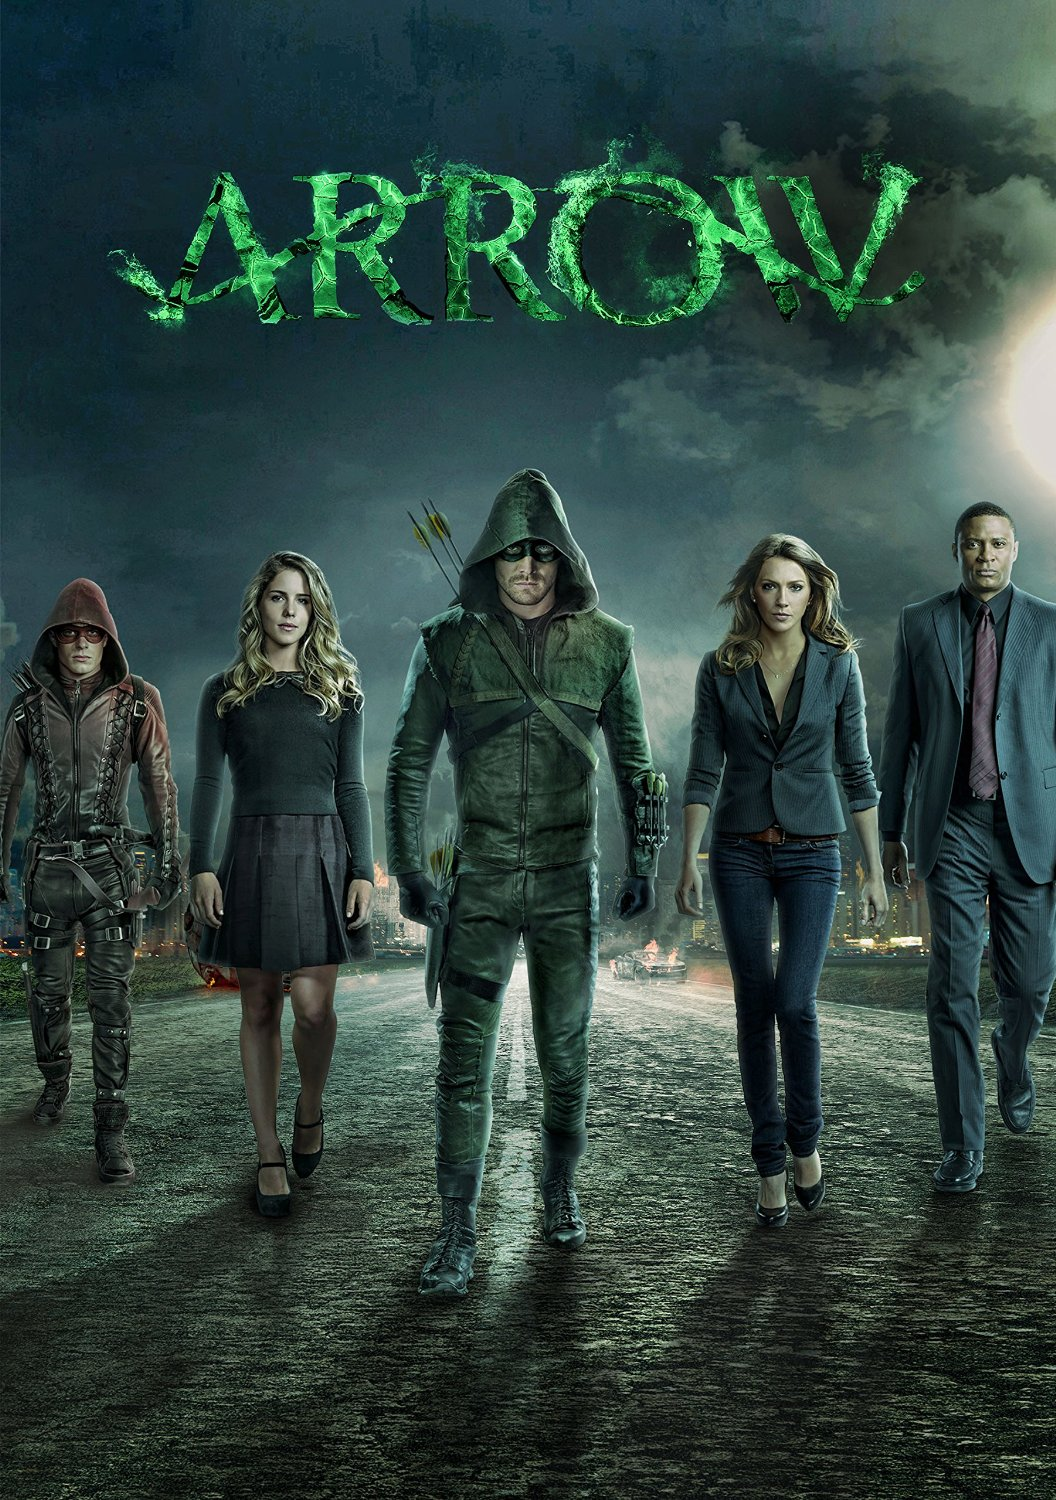 [影集] Arrow (2012~) A12vy4IazqL